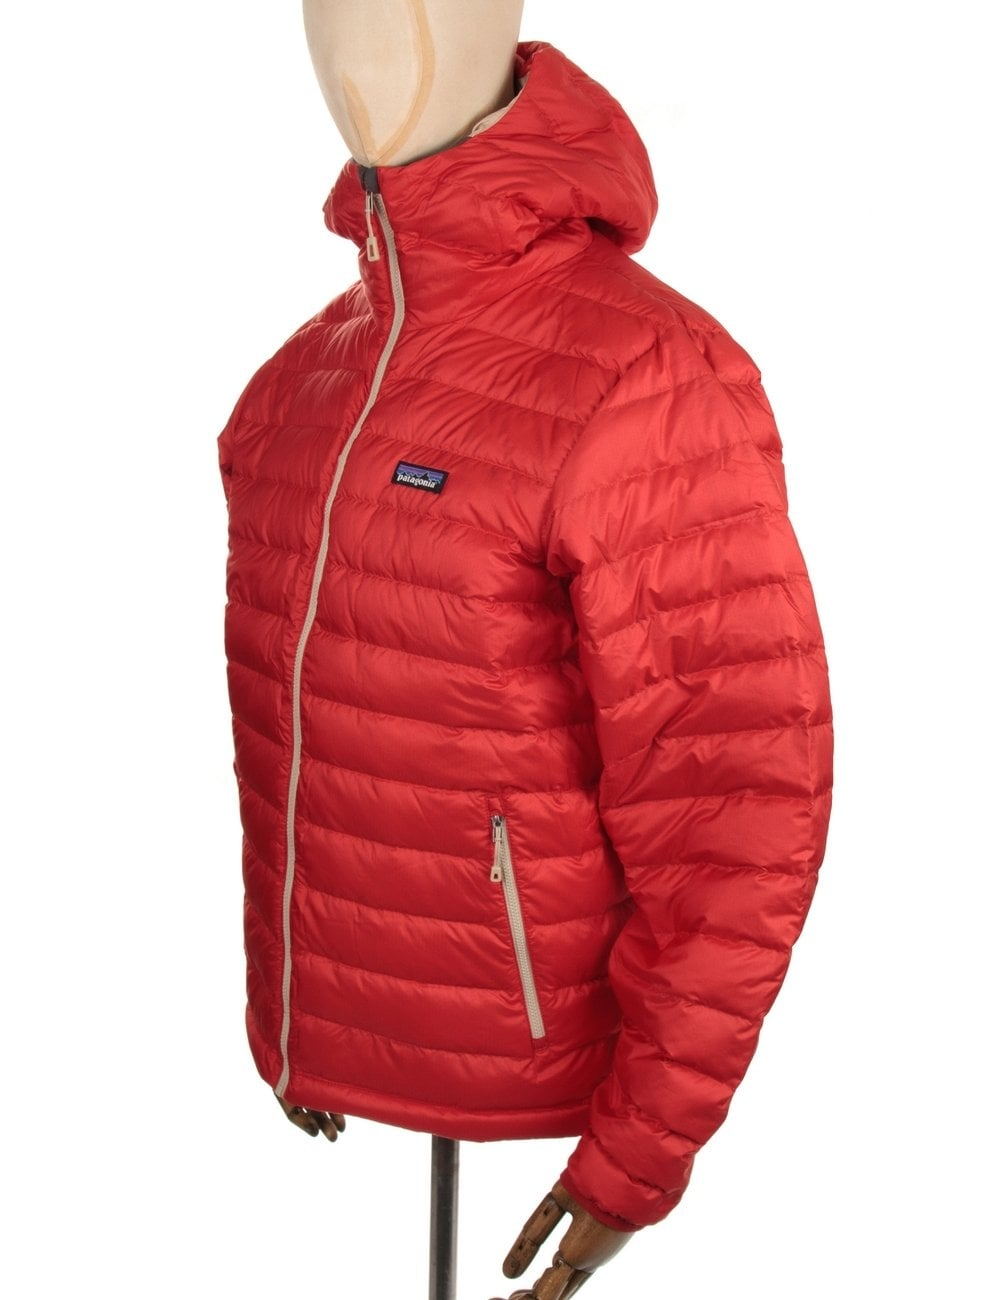 Patagonia Down Sweat Hooded Jacket Cochineal Red